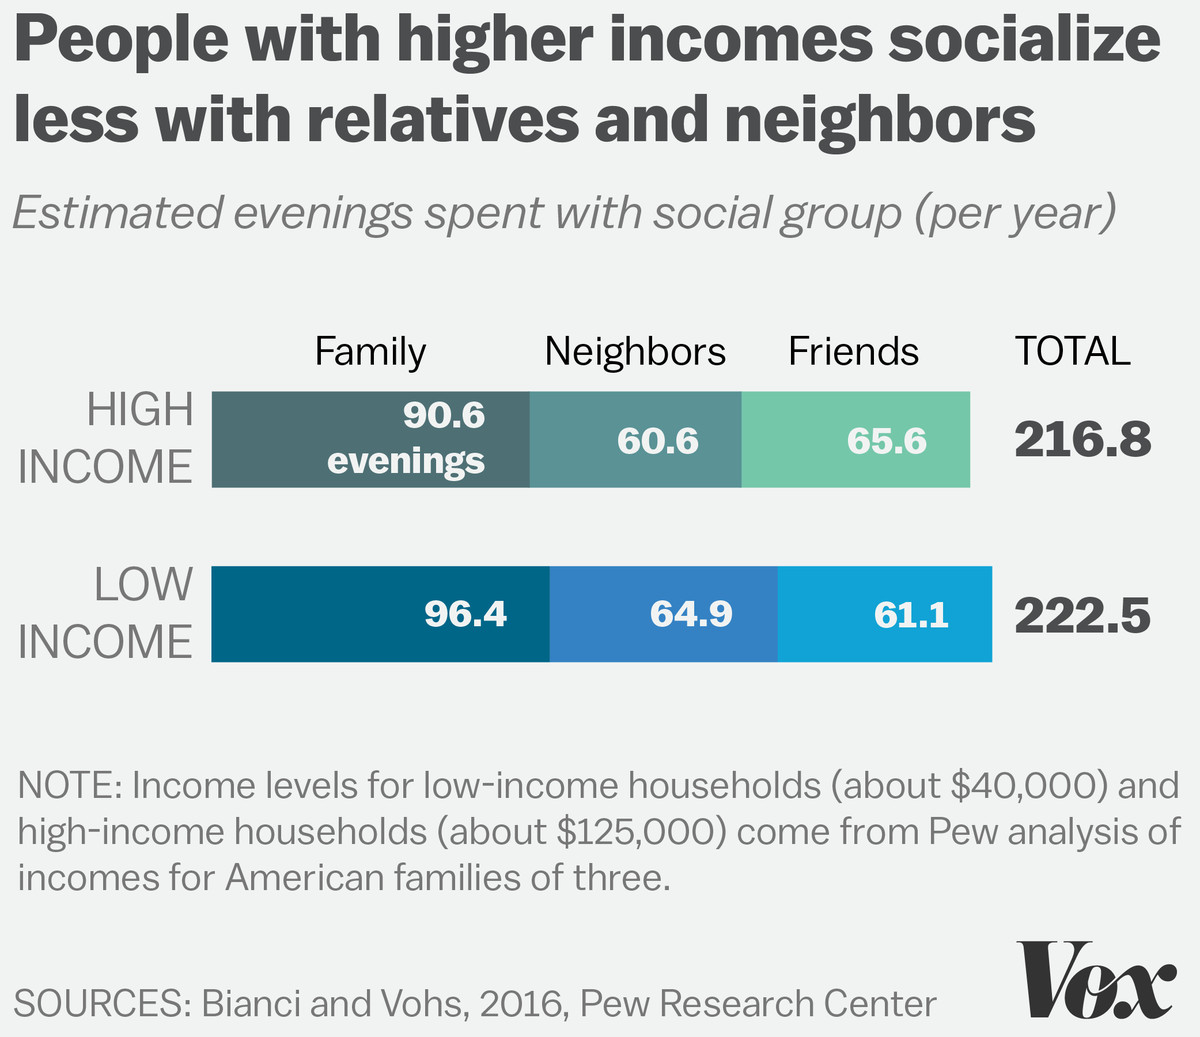 people with higher incomes socialize less with relatives and neighbors